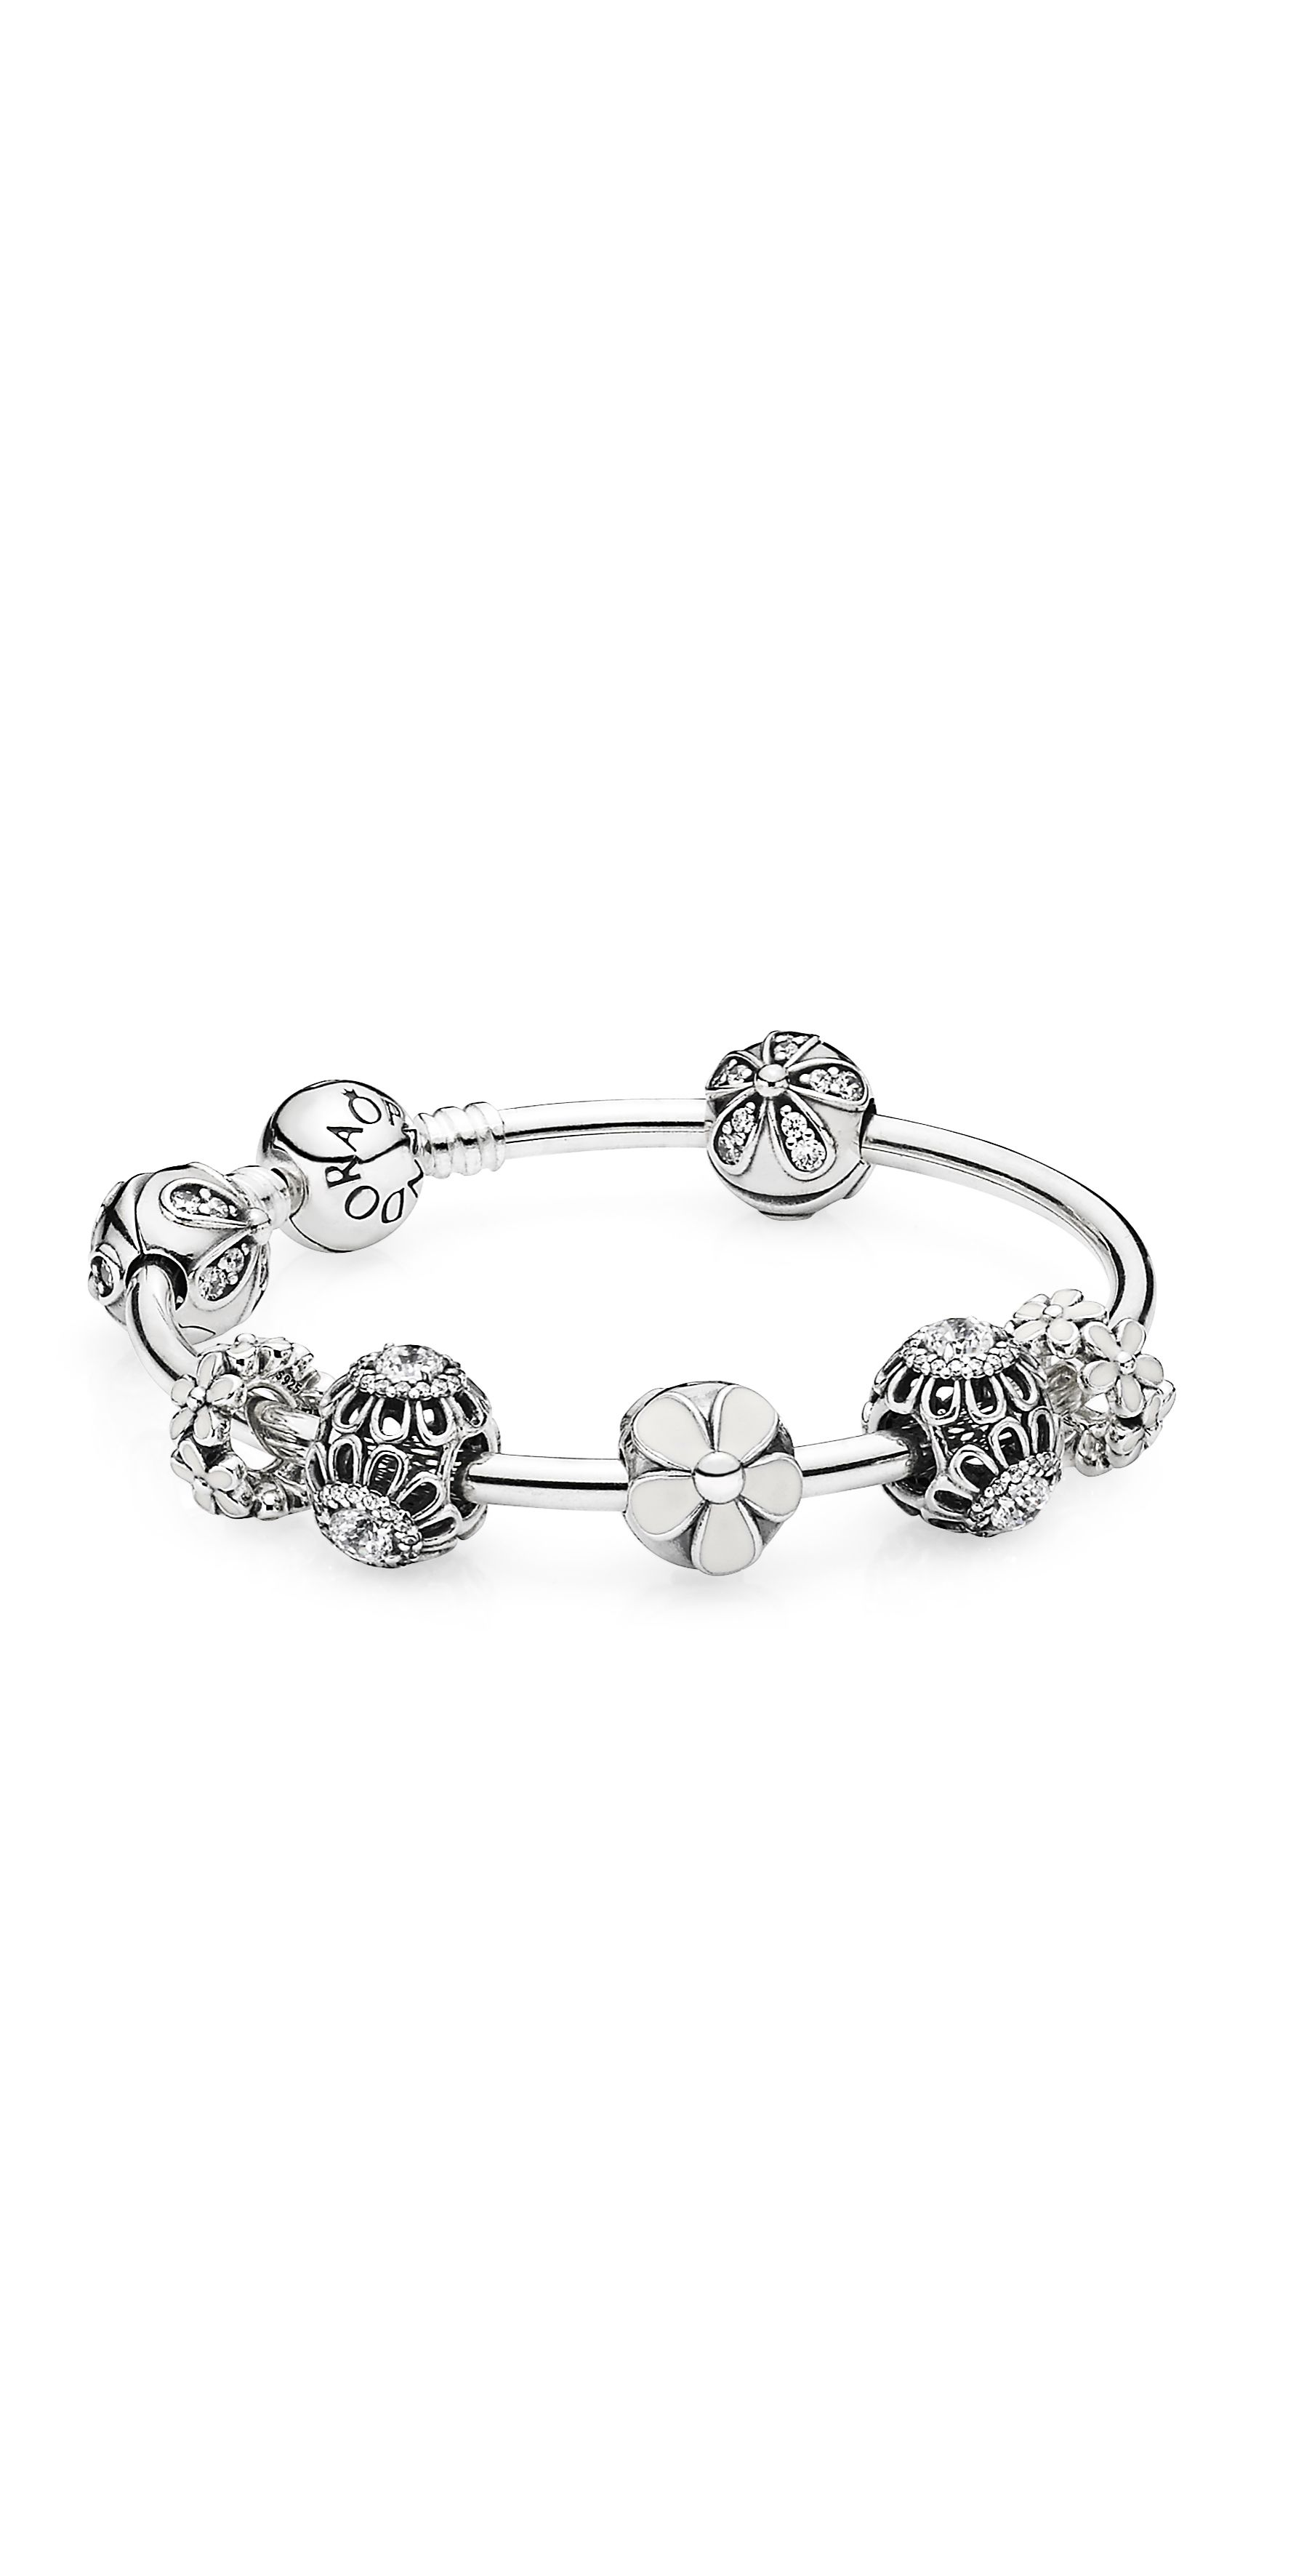 like the bracelet bought worth silver australia as charm for clear beauty it in is other get countries philippines pandora about zirconia with can he costs all but cubic you